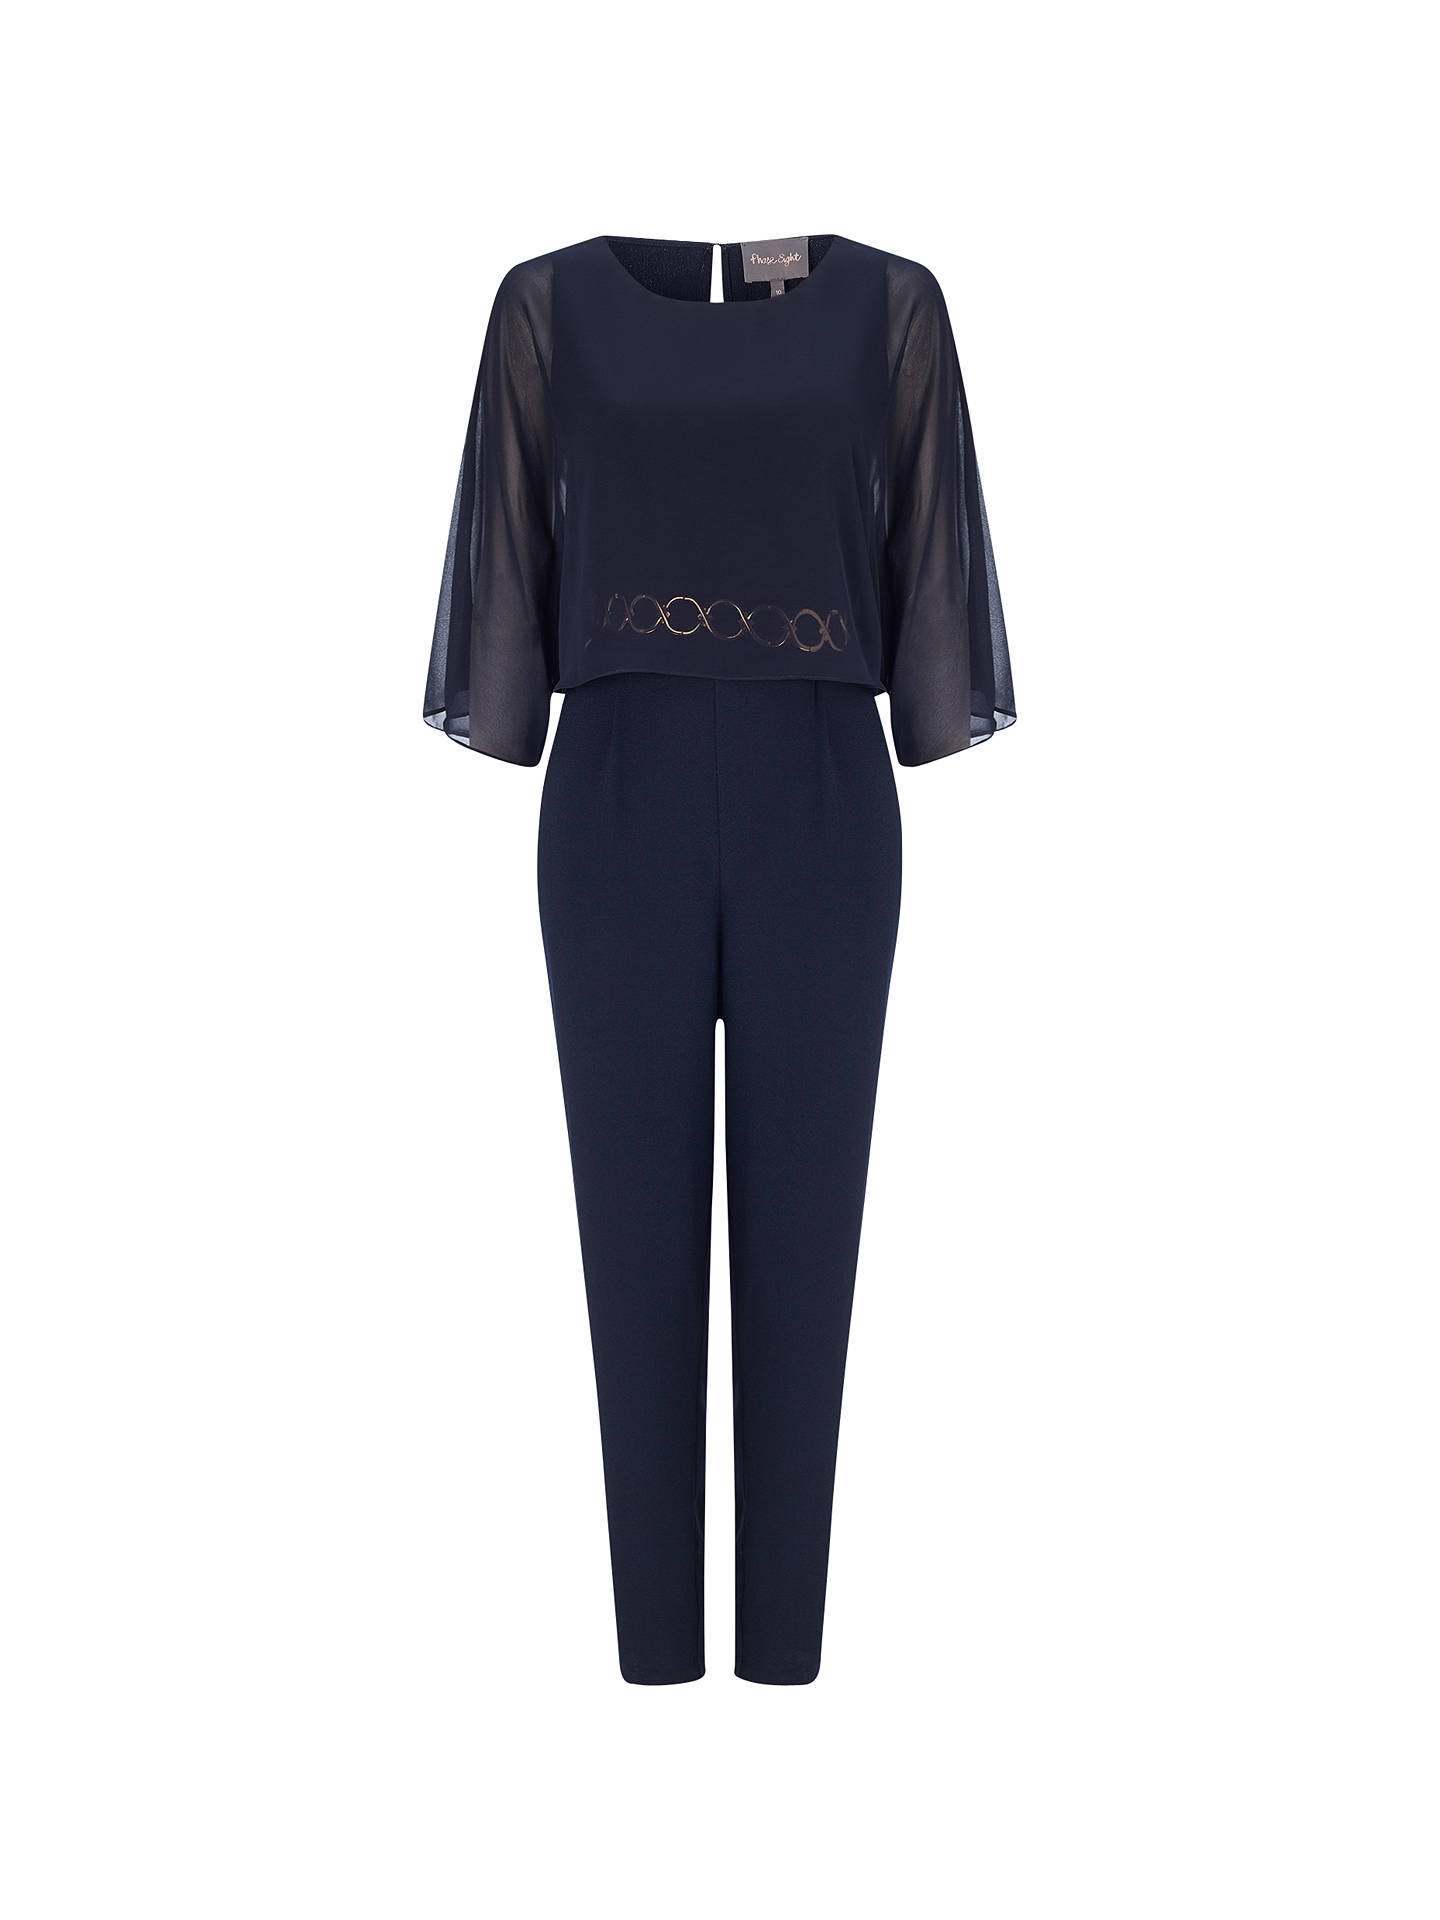 d2624a30 Buy Phase Eight Janessa Jumpsuit, Navy, 6 Online at johnlewis.com